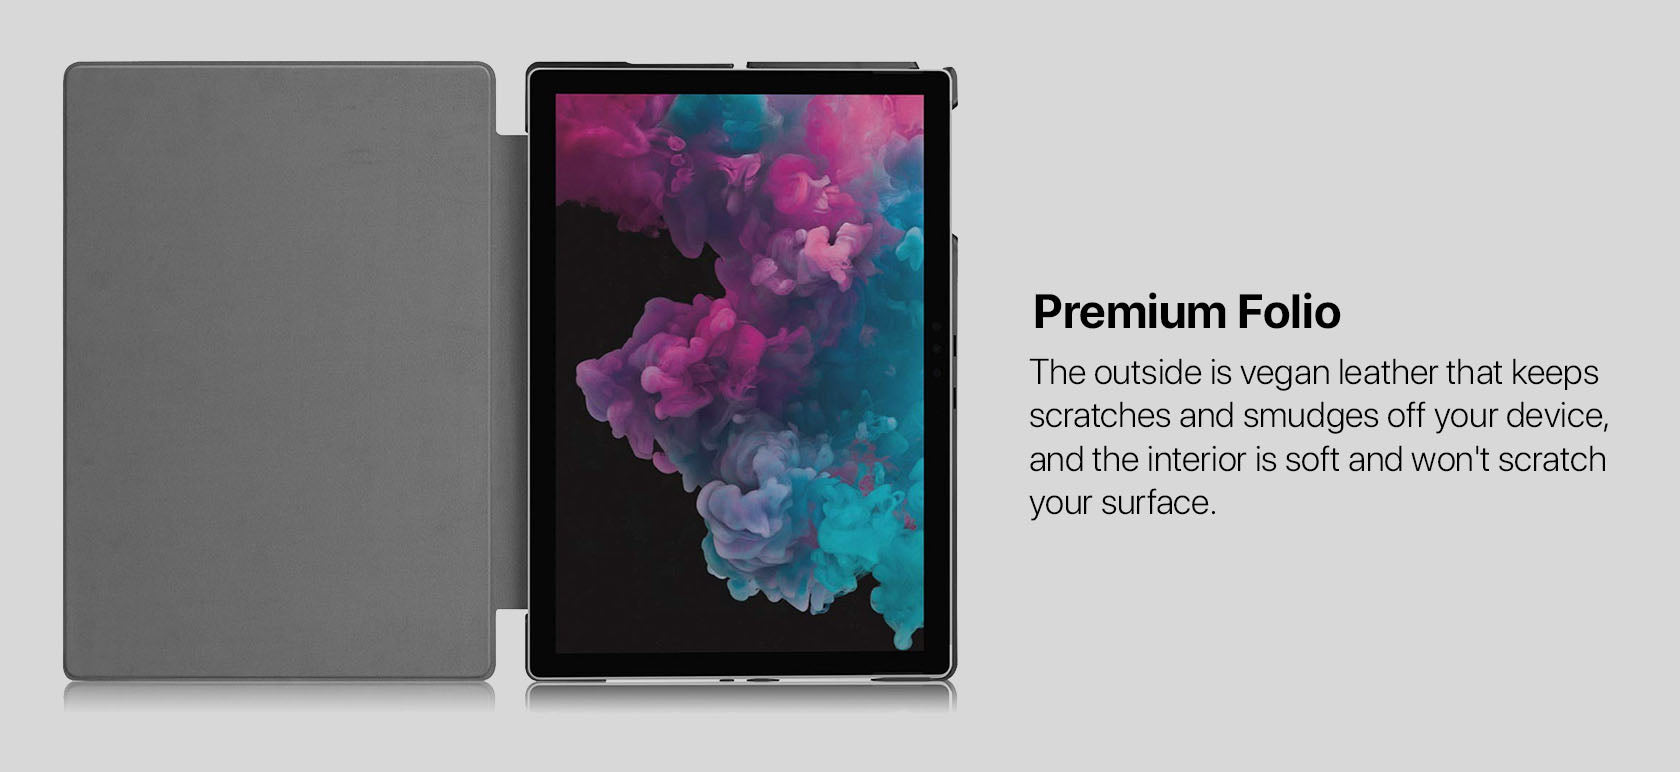 Premium Folio - The outside is vegan leather that keeps scratches and smudges off your device, and the interior is soft and won't scratch your surface.